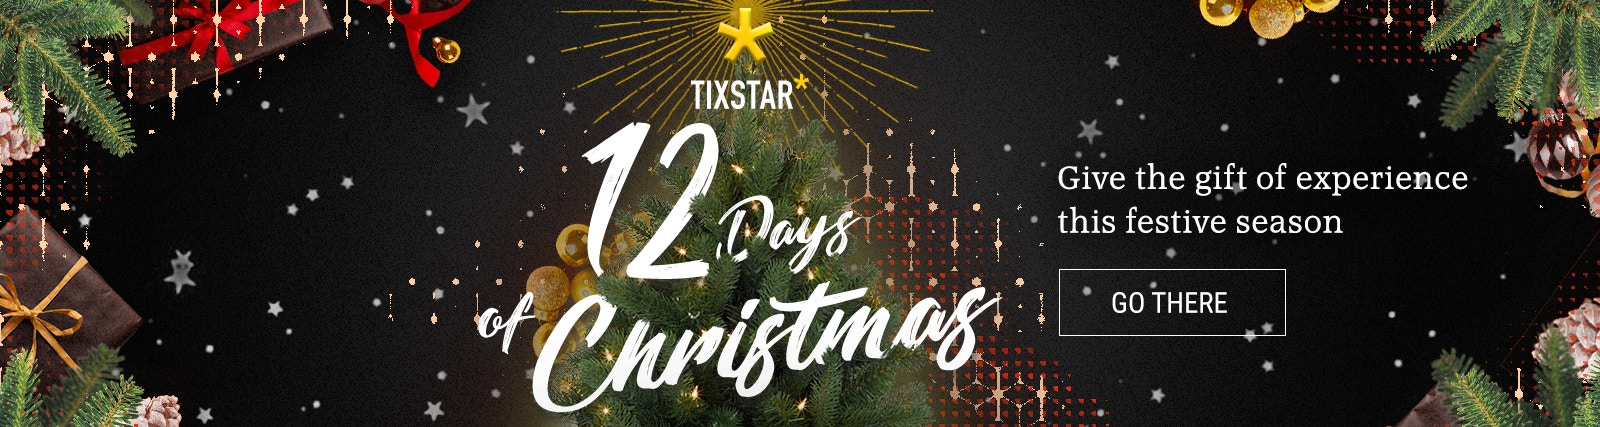 TIXSTAR 12 Days of Xmas